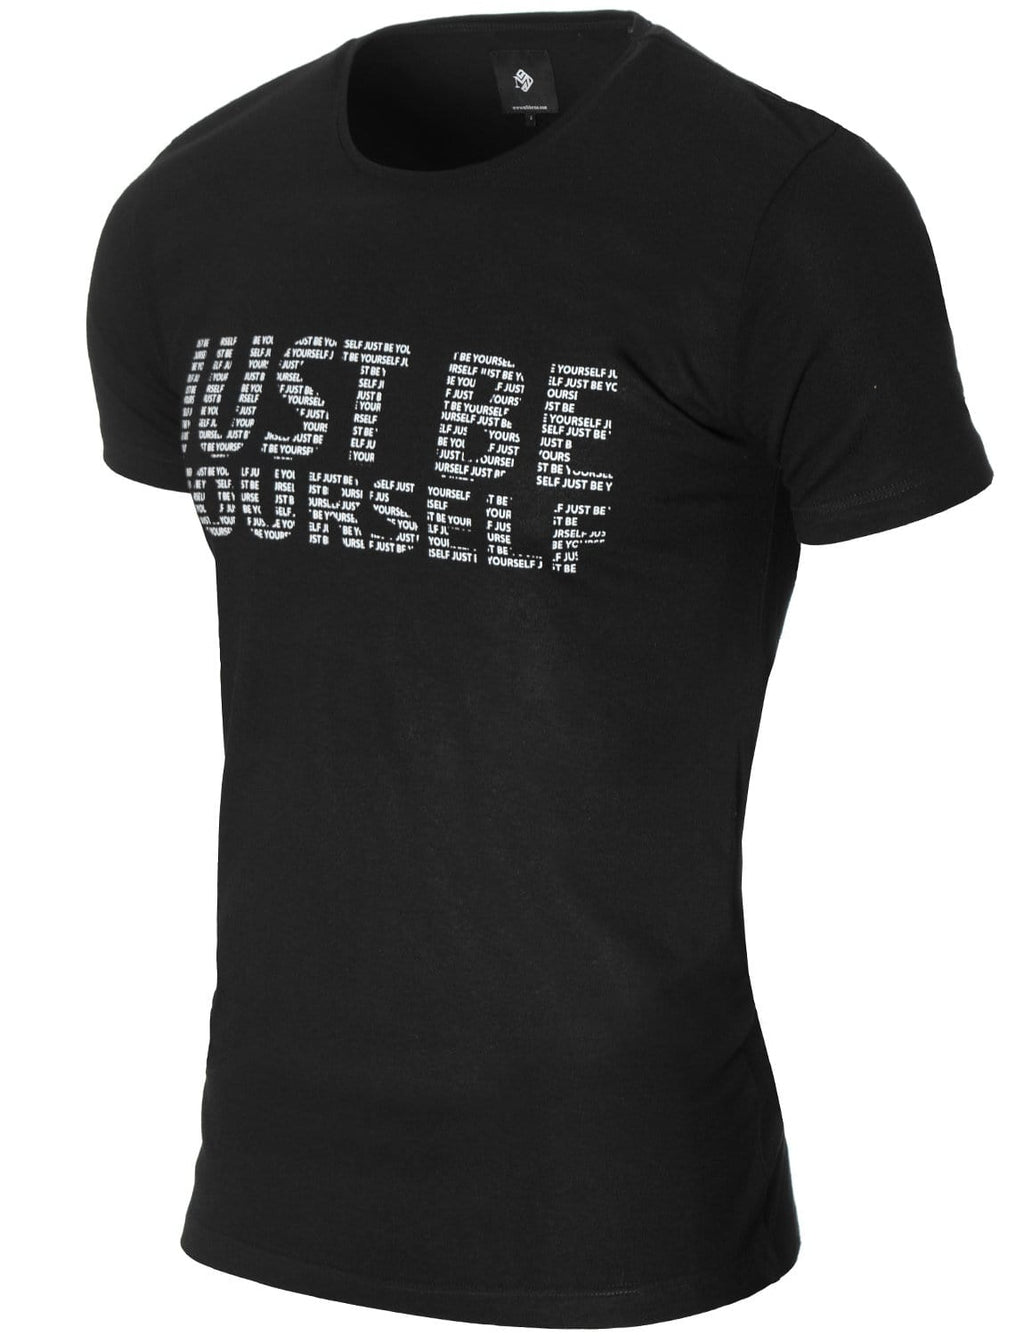 Mens Slogan Graphic T-shirt Black (MOD1045RN)